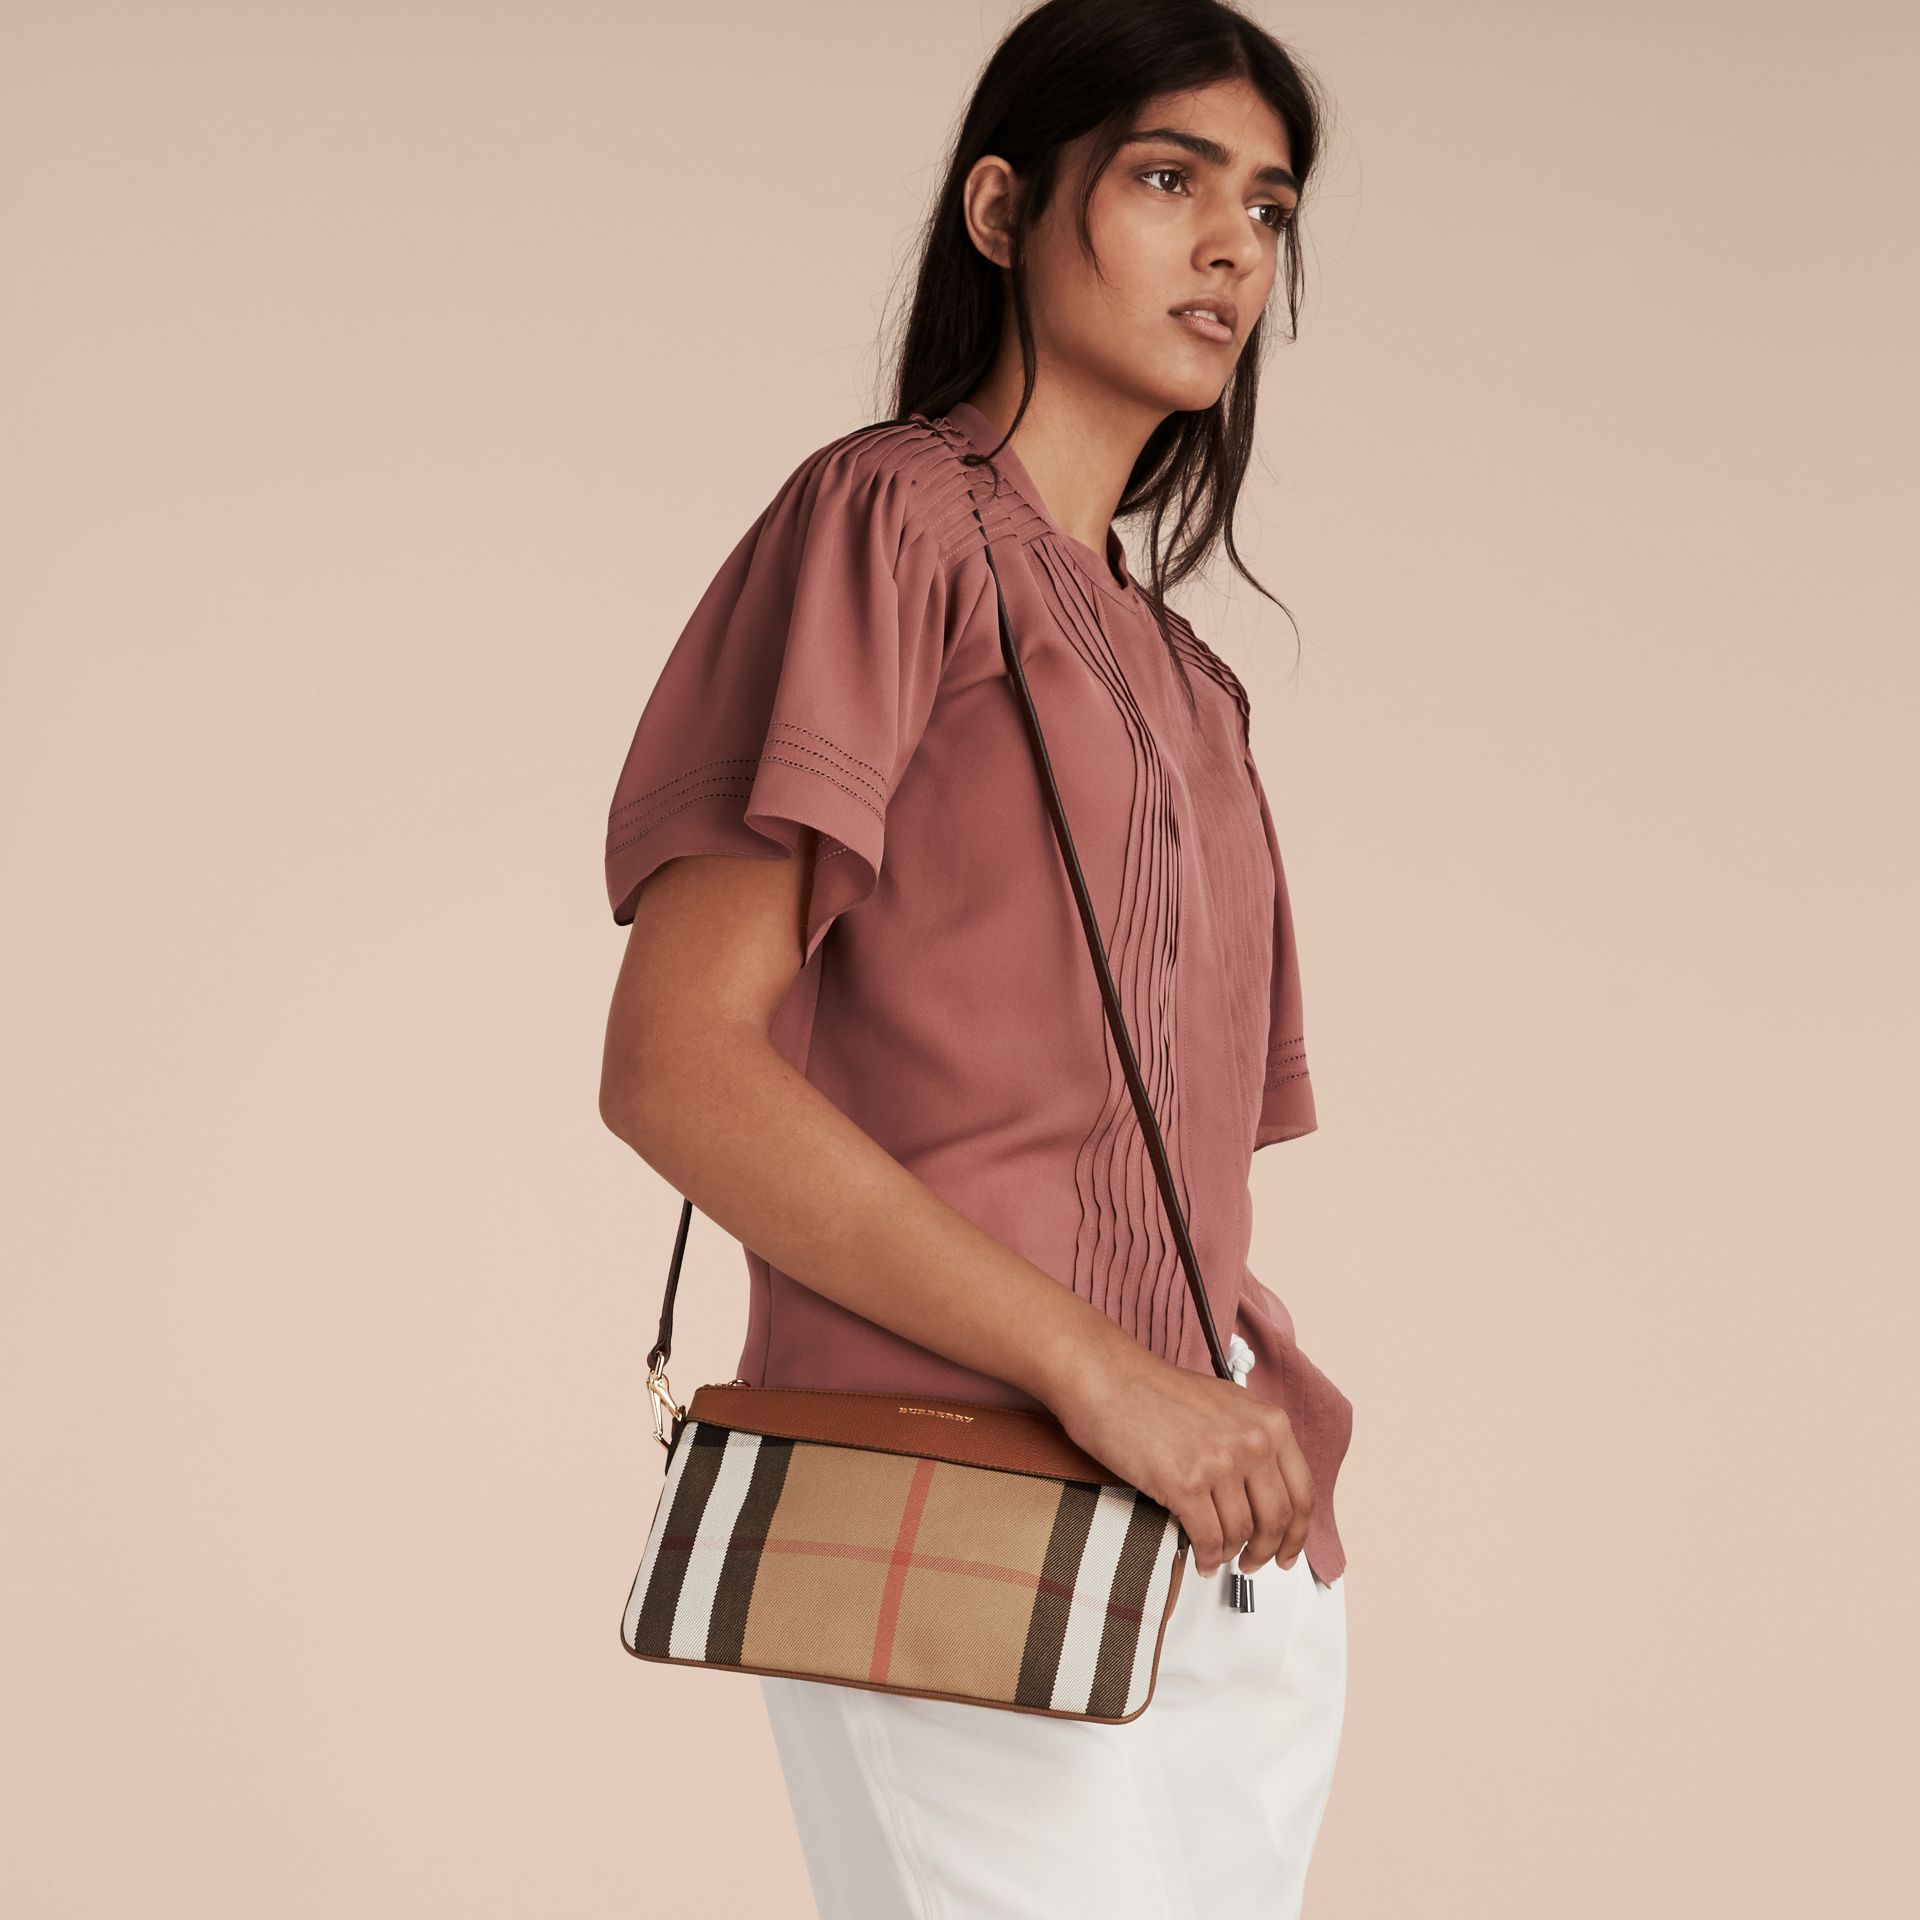 House Check and Leather Clutch Bag in Tan - Women | Burberry Australia - gallery image 2